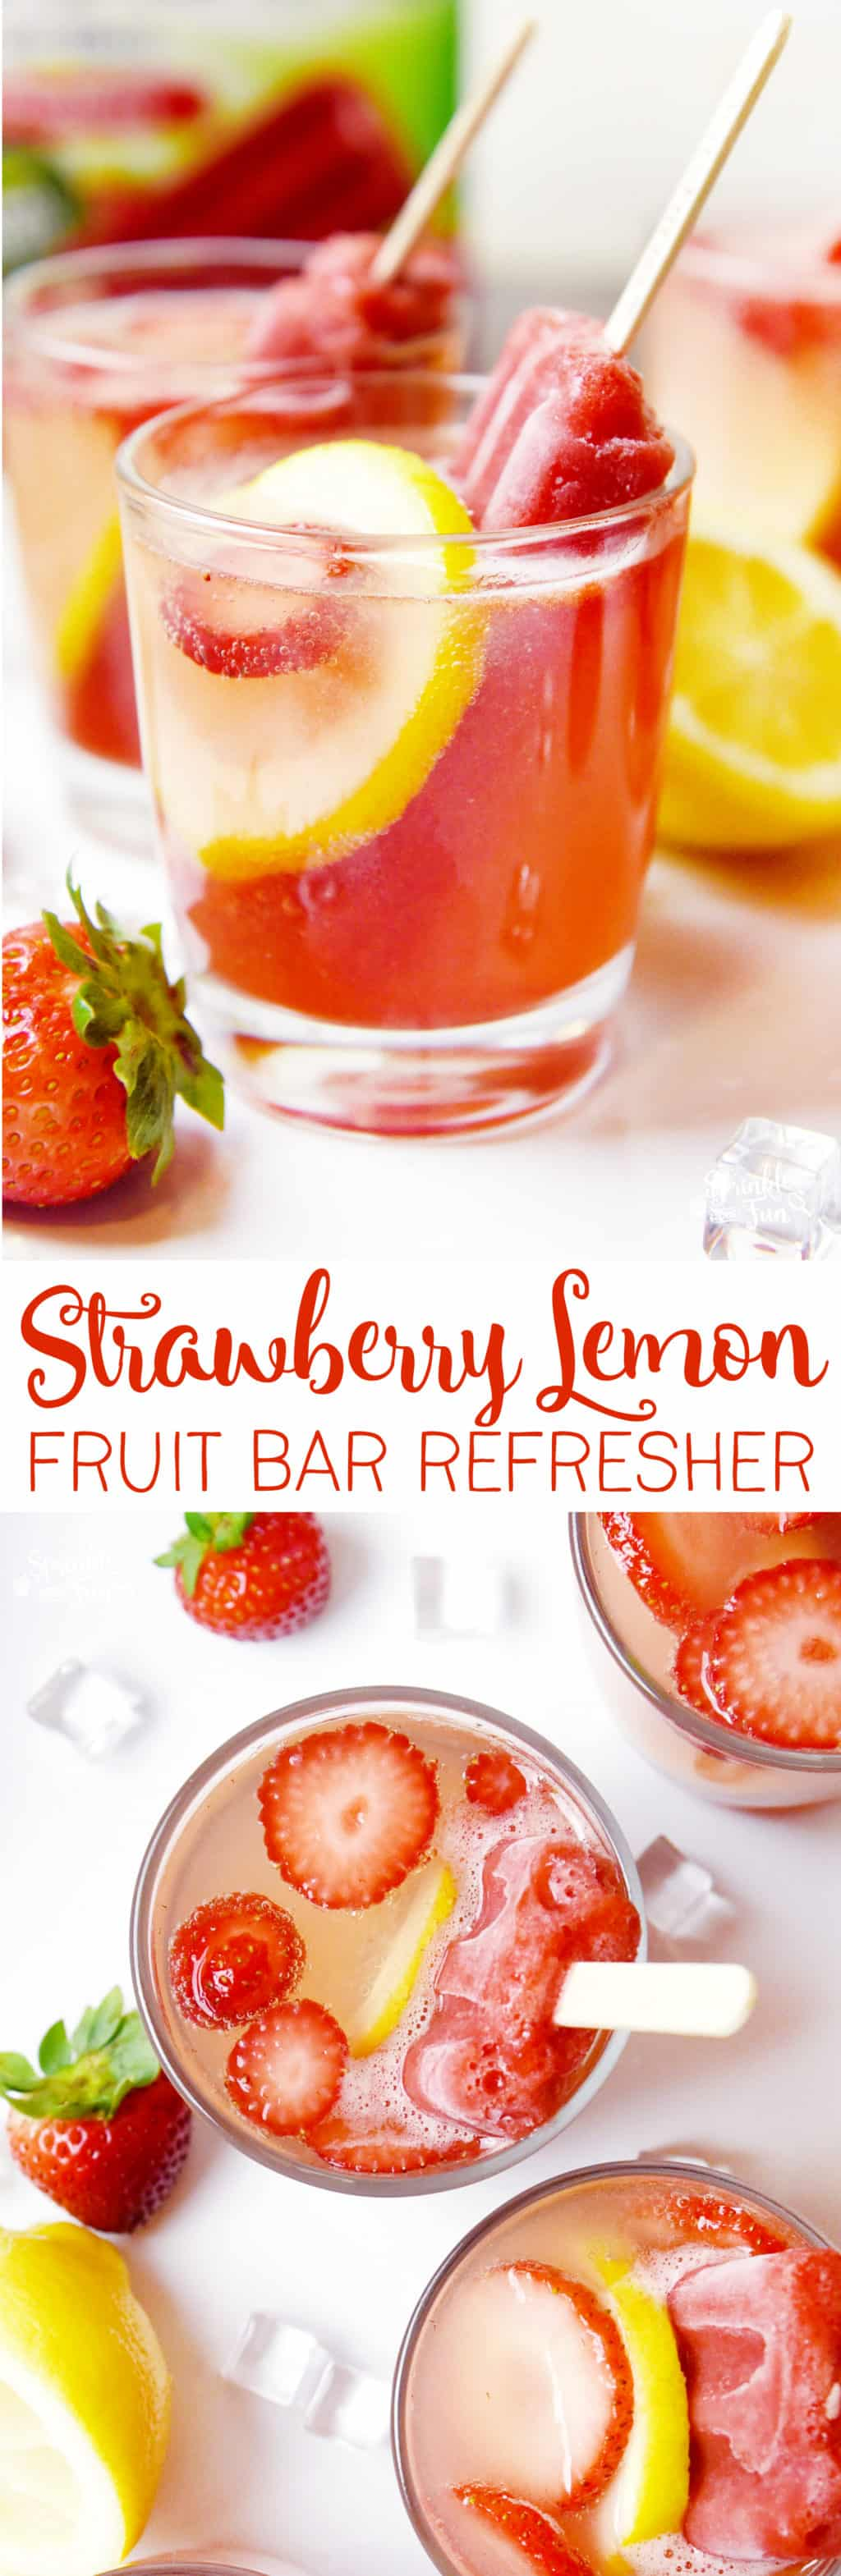 Fruit Bar Ideas strawberry lemon fruit bar refresher - sprinkle some fun